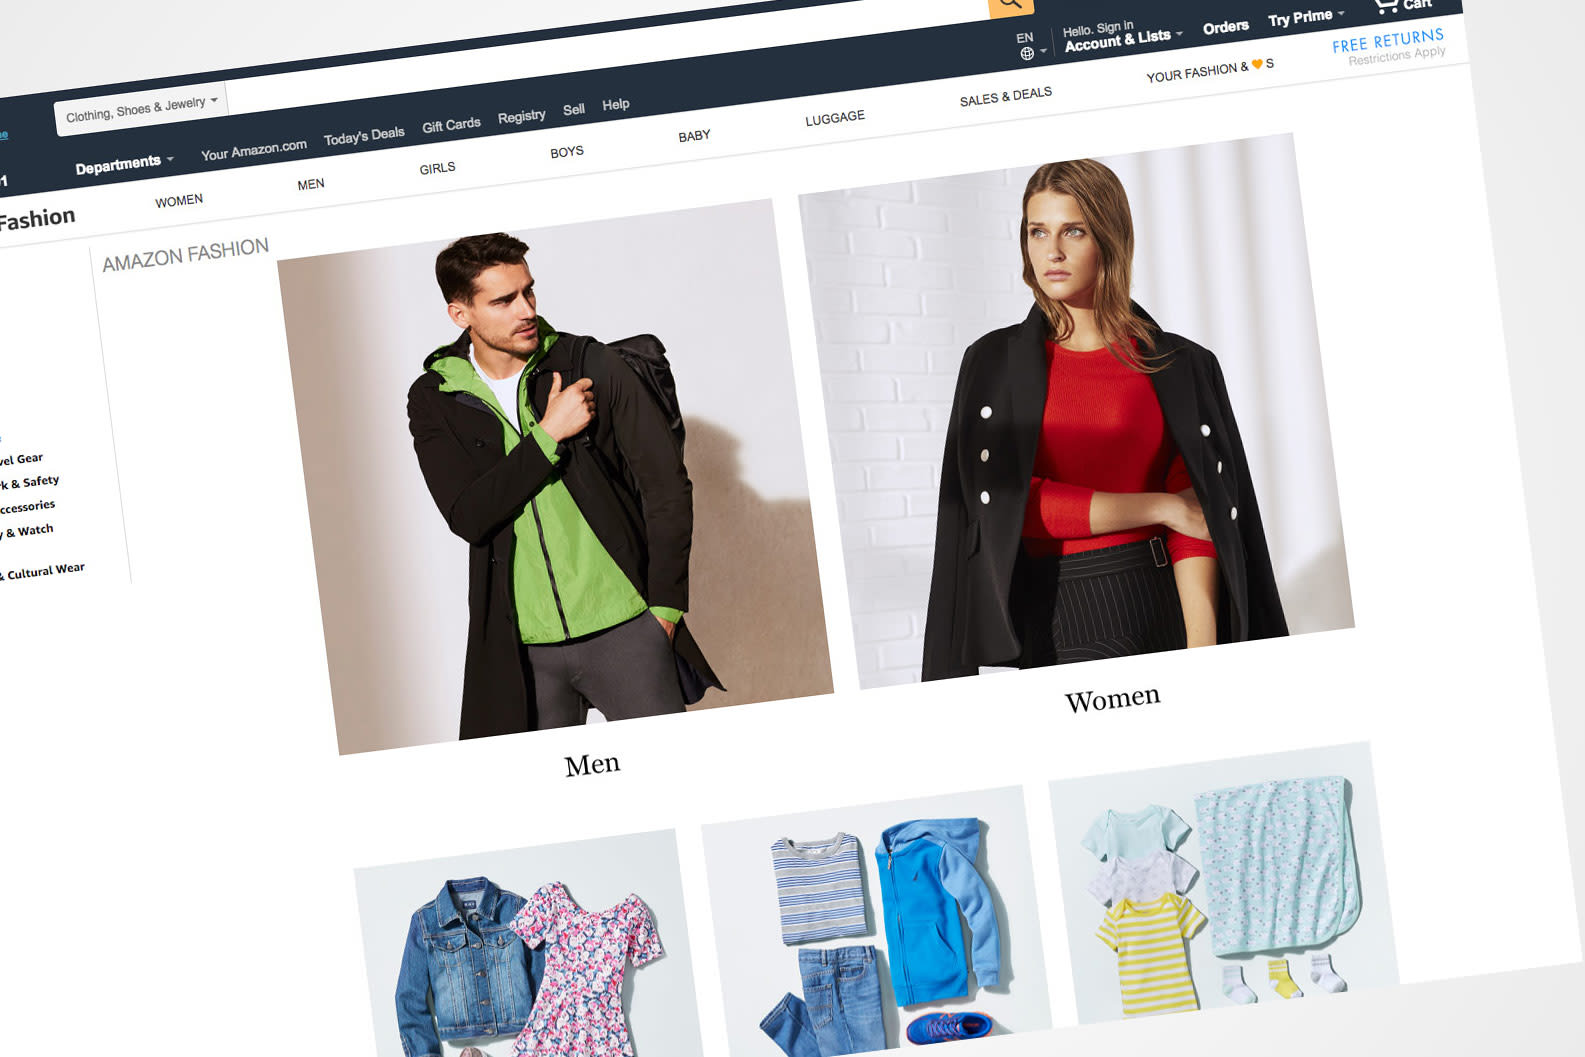 Amazon Fashion Amazon Fashion Bets Big On Athleisure Still Relies On Third